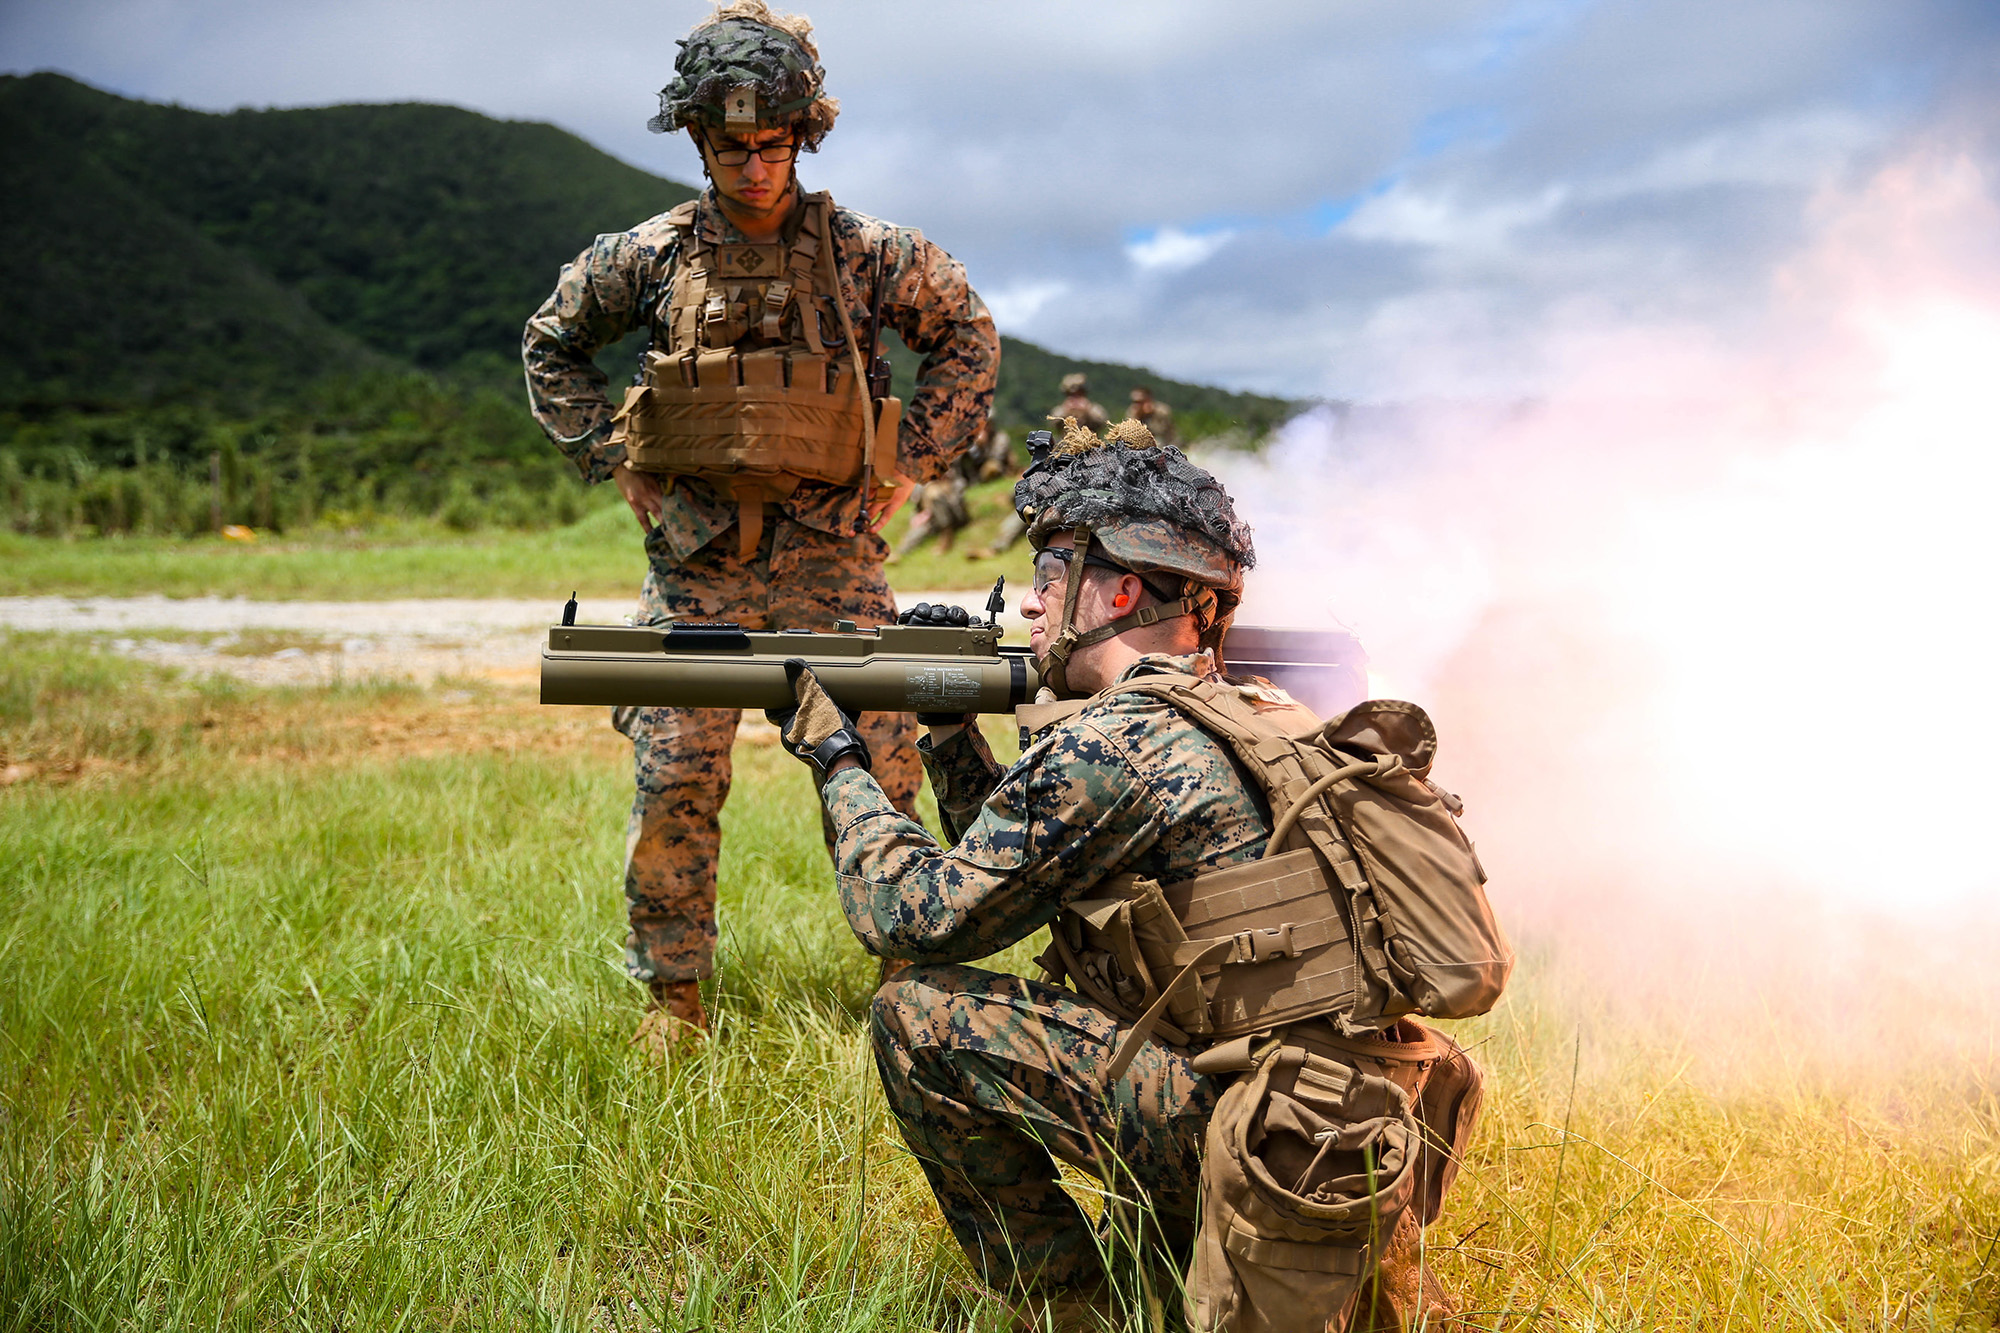 U.S. Marines fire at targets during a high-explosive weapons range on Camp Schwab, Okinawa, Japan, June 27, 2020. (Cpl. Donovan Massieperez/Marine Corps)